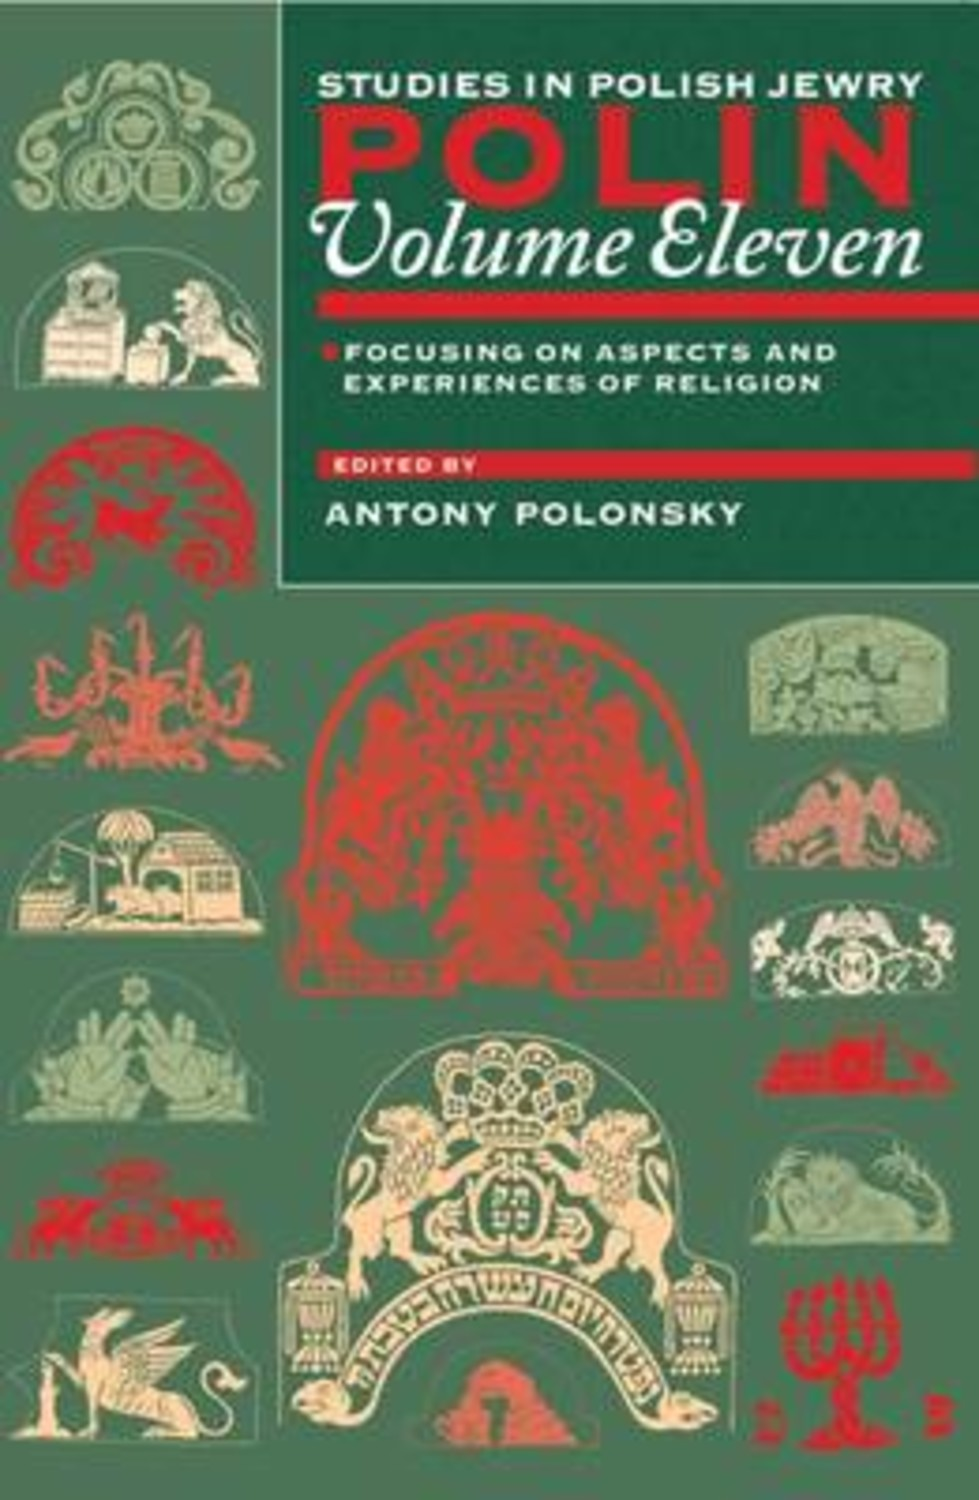 The jews in poland and russia a short history liverpool polin studies in polish jewry volume 11 fandeluxe Gallery